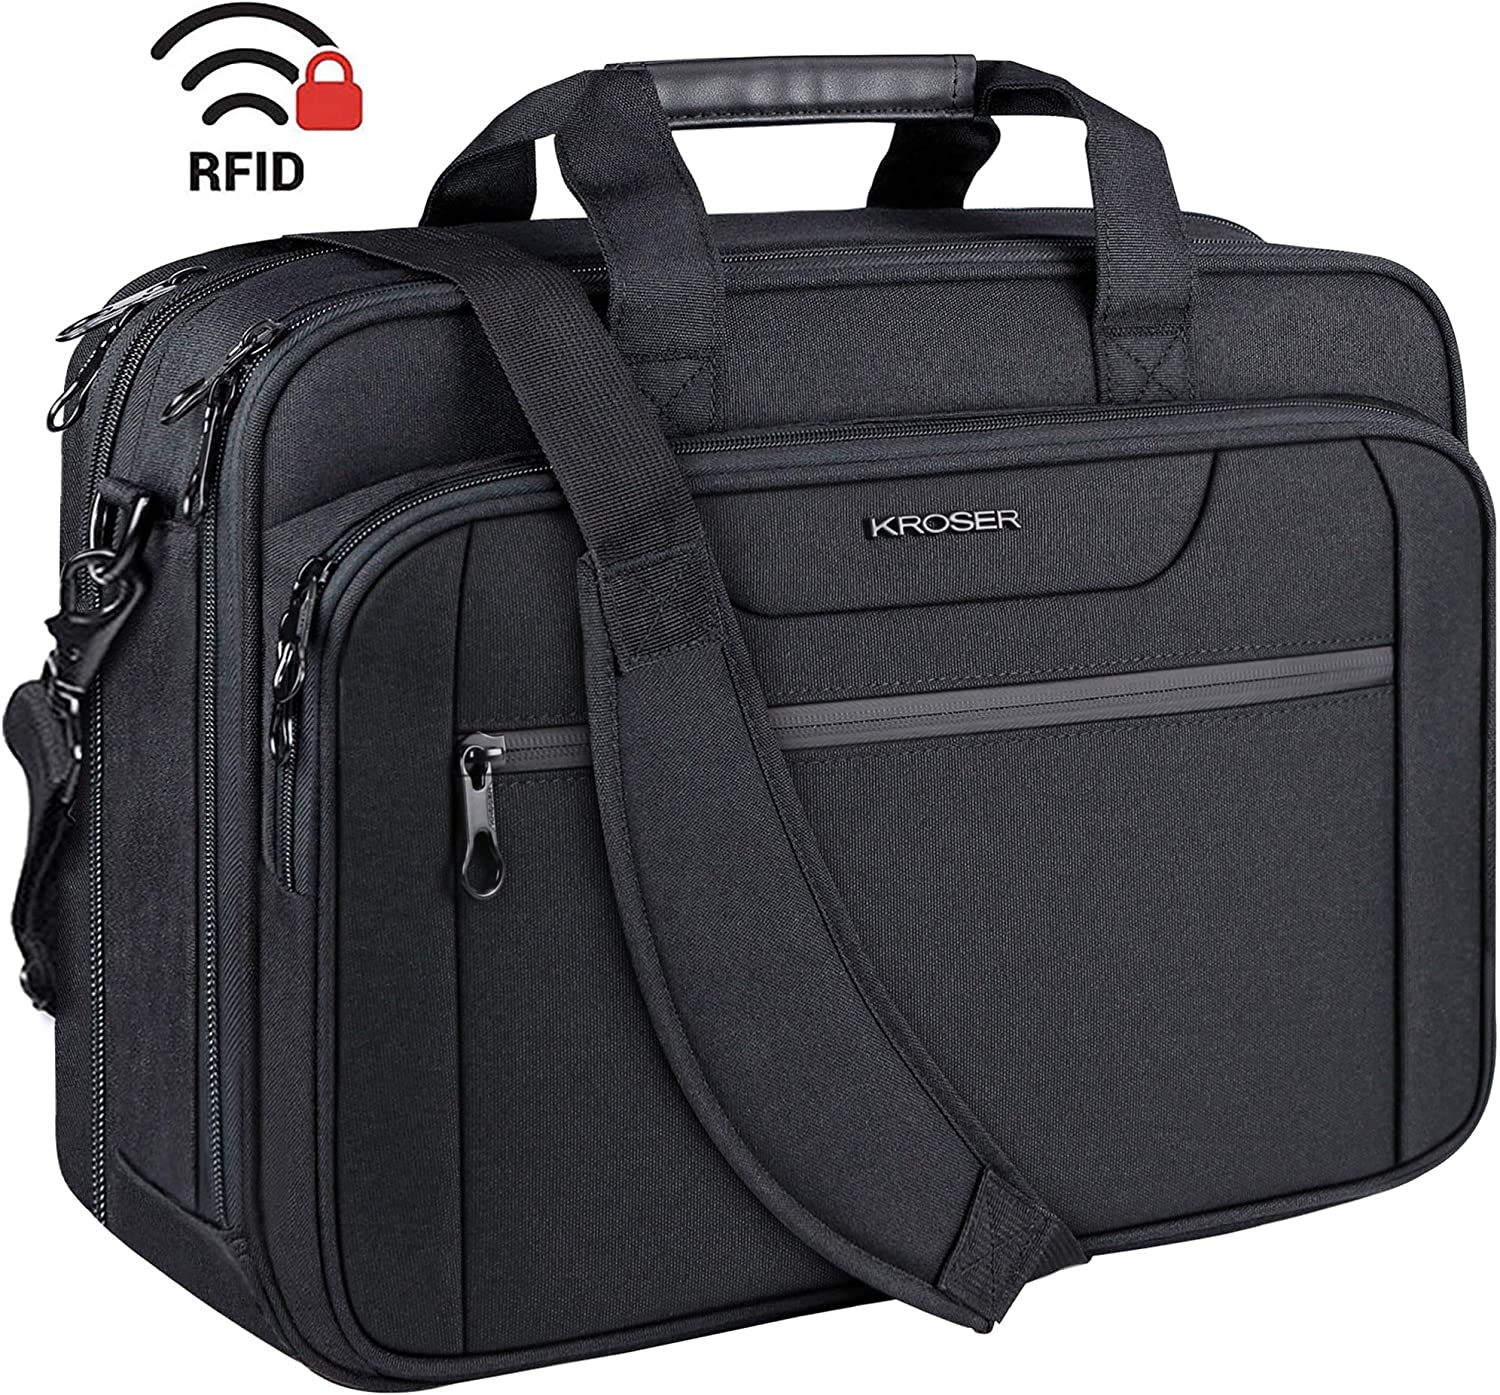 "KROSER 18"" Laptop Bag Expandable Laptop Briefcase Fits Up to 17.3 Inch Laptop Water-Repellent Shoulder Messenger Bag Computer Bag for Travel/Business/School/Men/Women-Black"